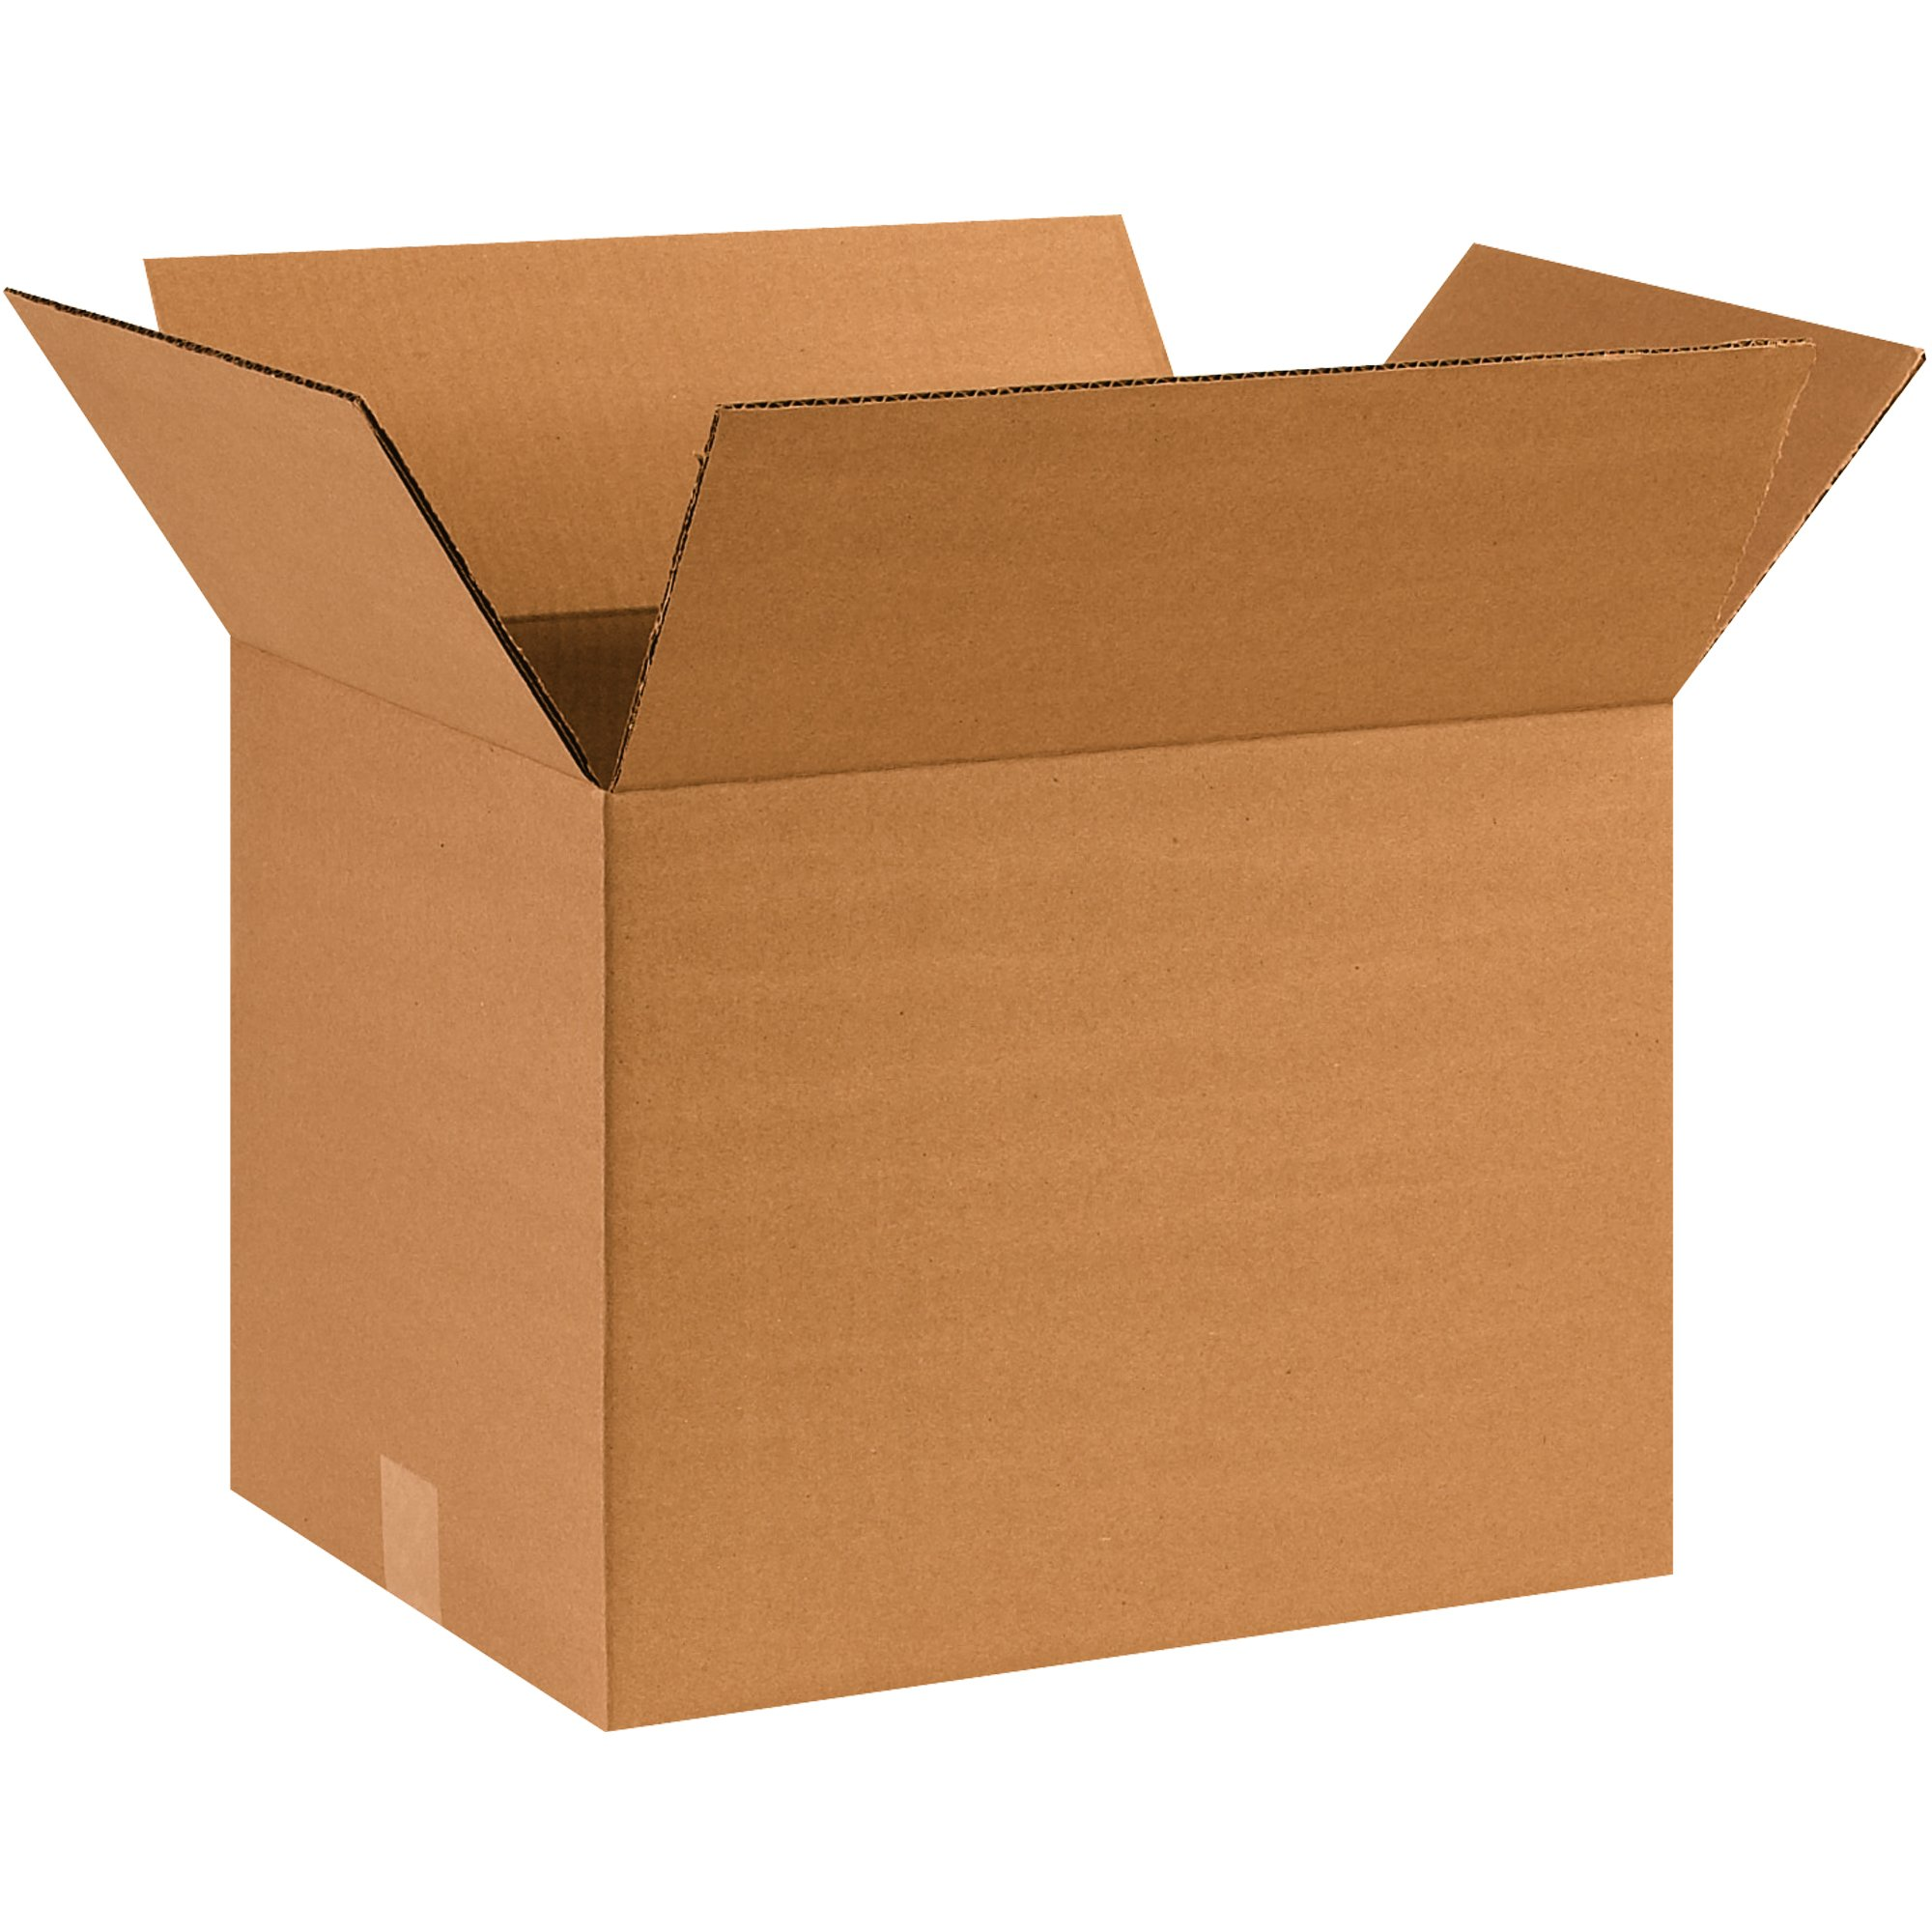 BOX USA B16121250PK Corrugated Boxes, 16'' L x 12'' W x 12'' H, Kraft (Pack of 50) by BOX USA (Image #1)